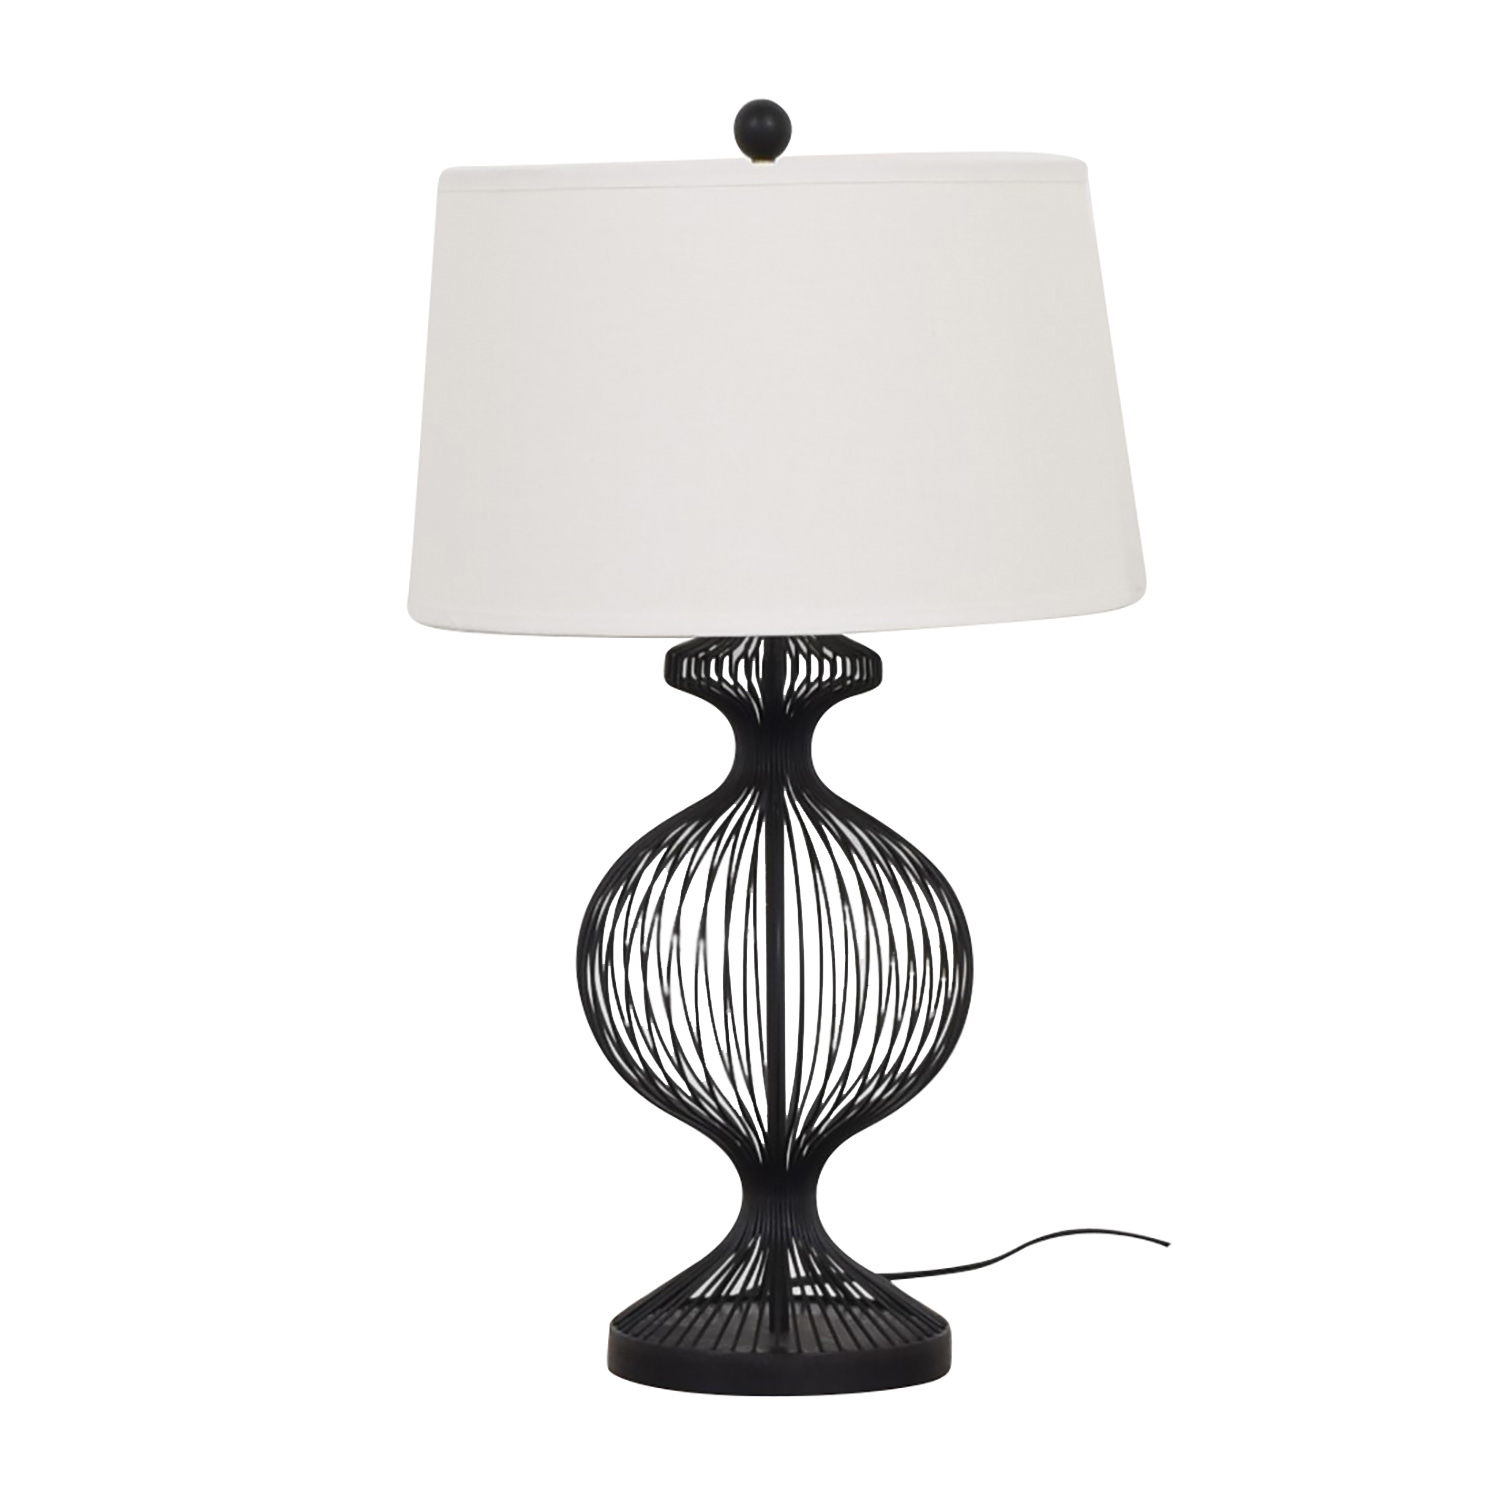 Ethan Allen Ethan Allen Kenzie Cage Table Lamp nyc